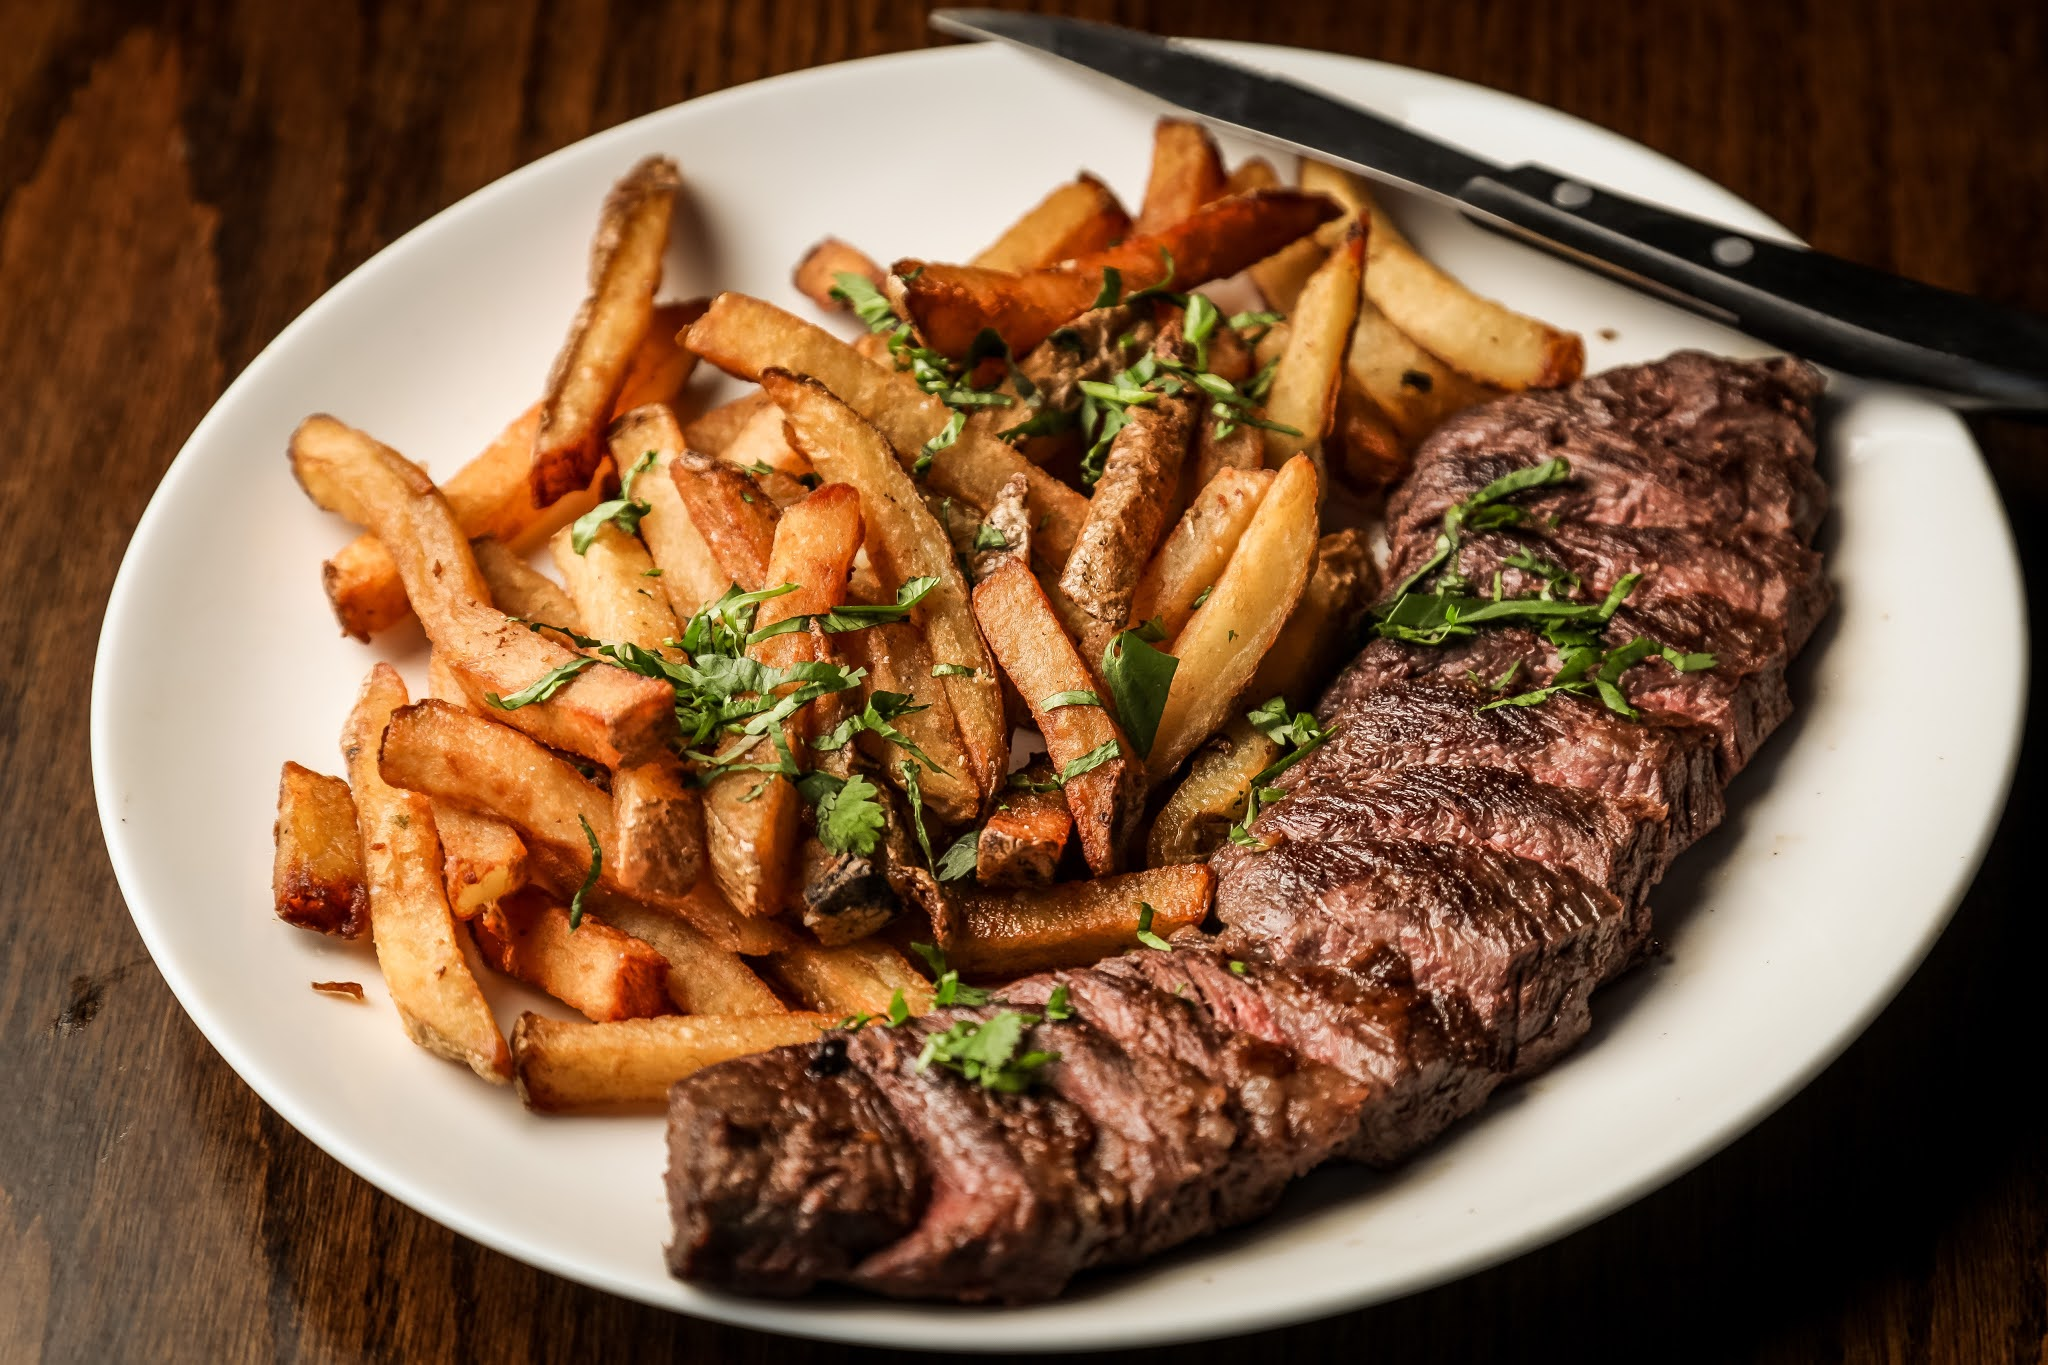 Steak and chips Valentine's Day meal